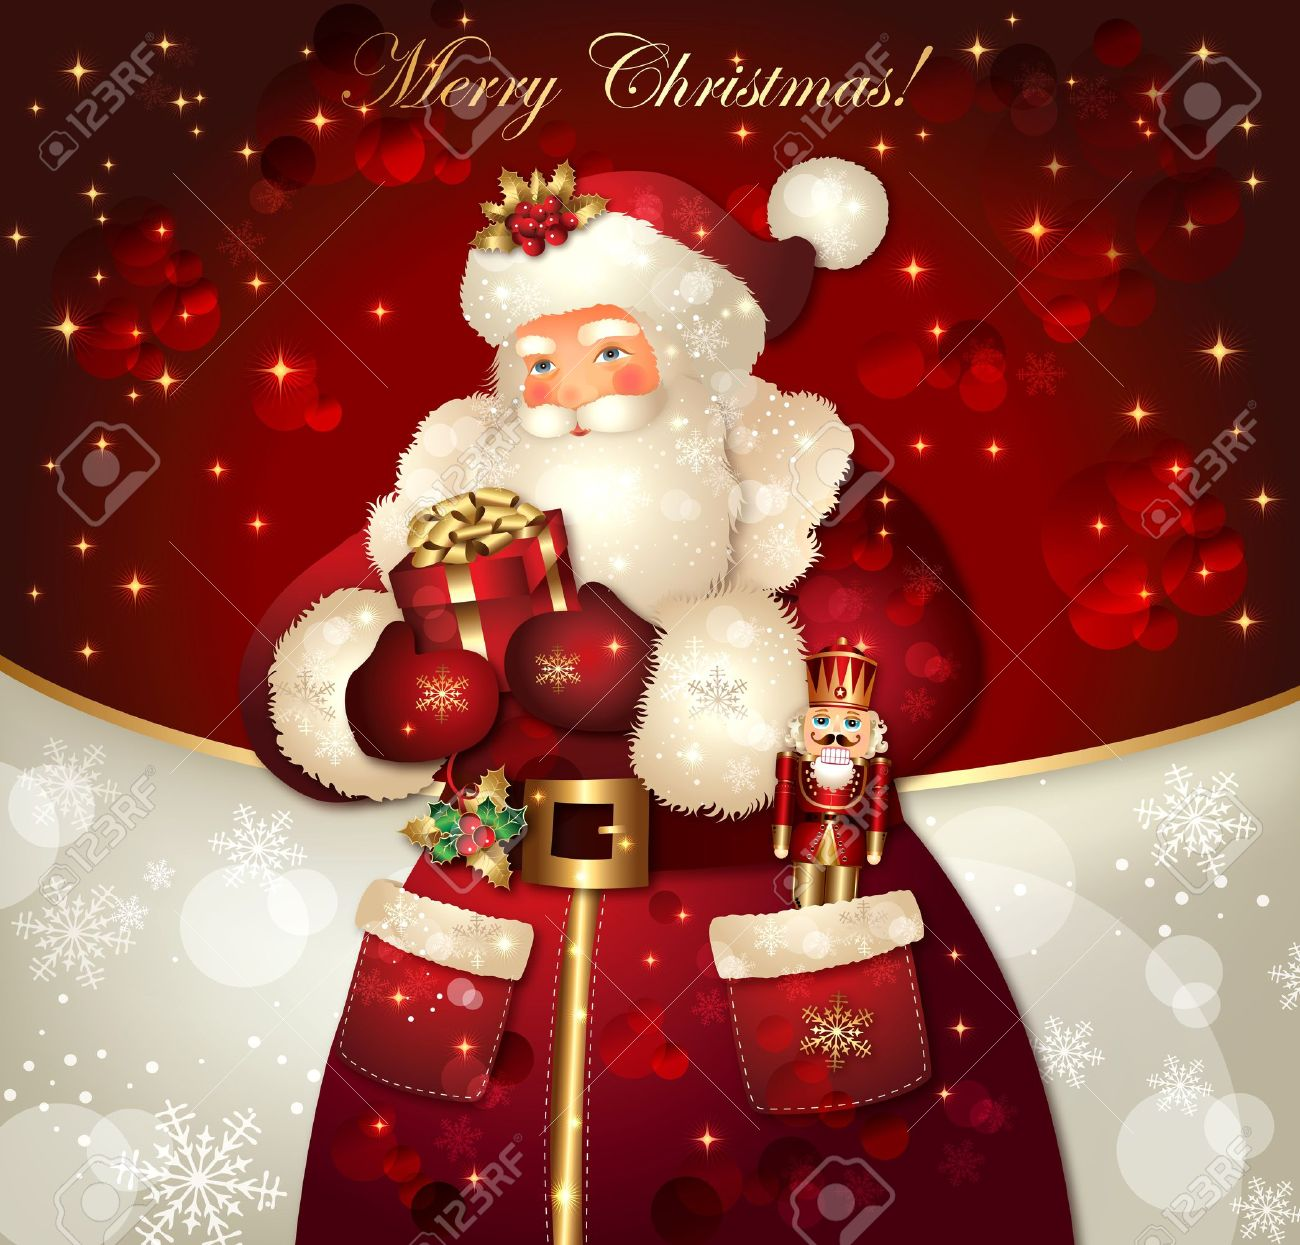 christmas card with santa claus and congratulations royalty free